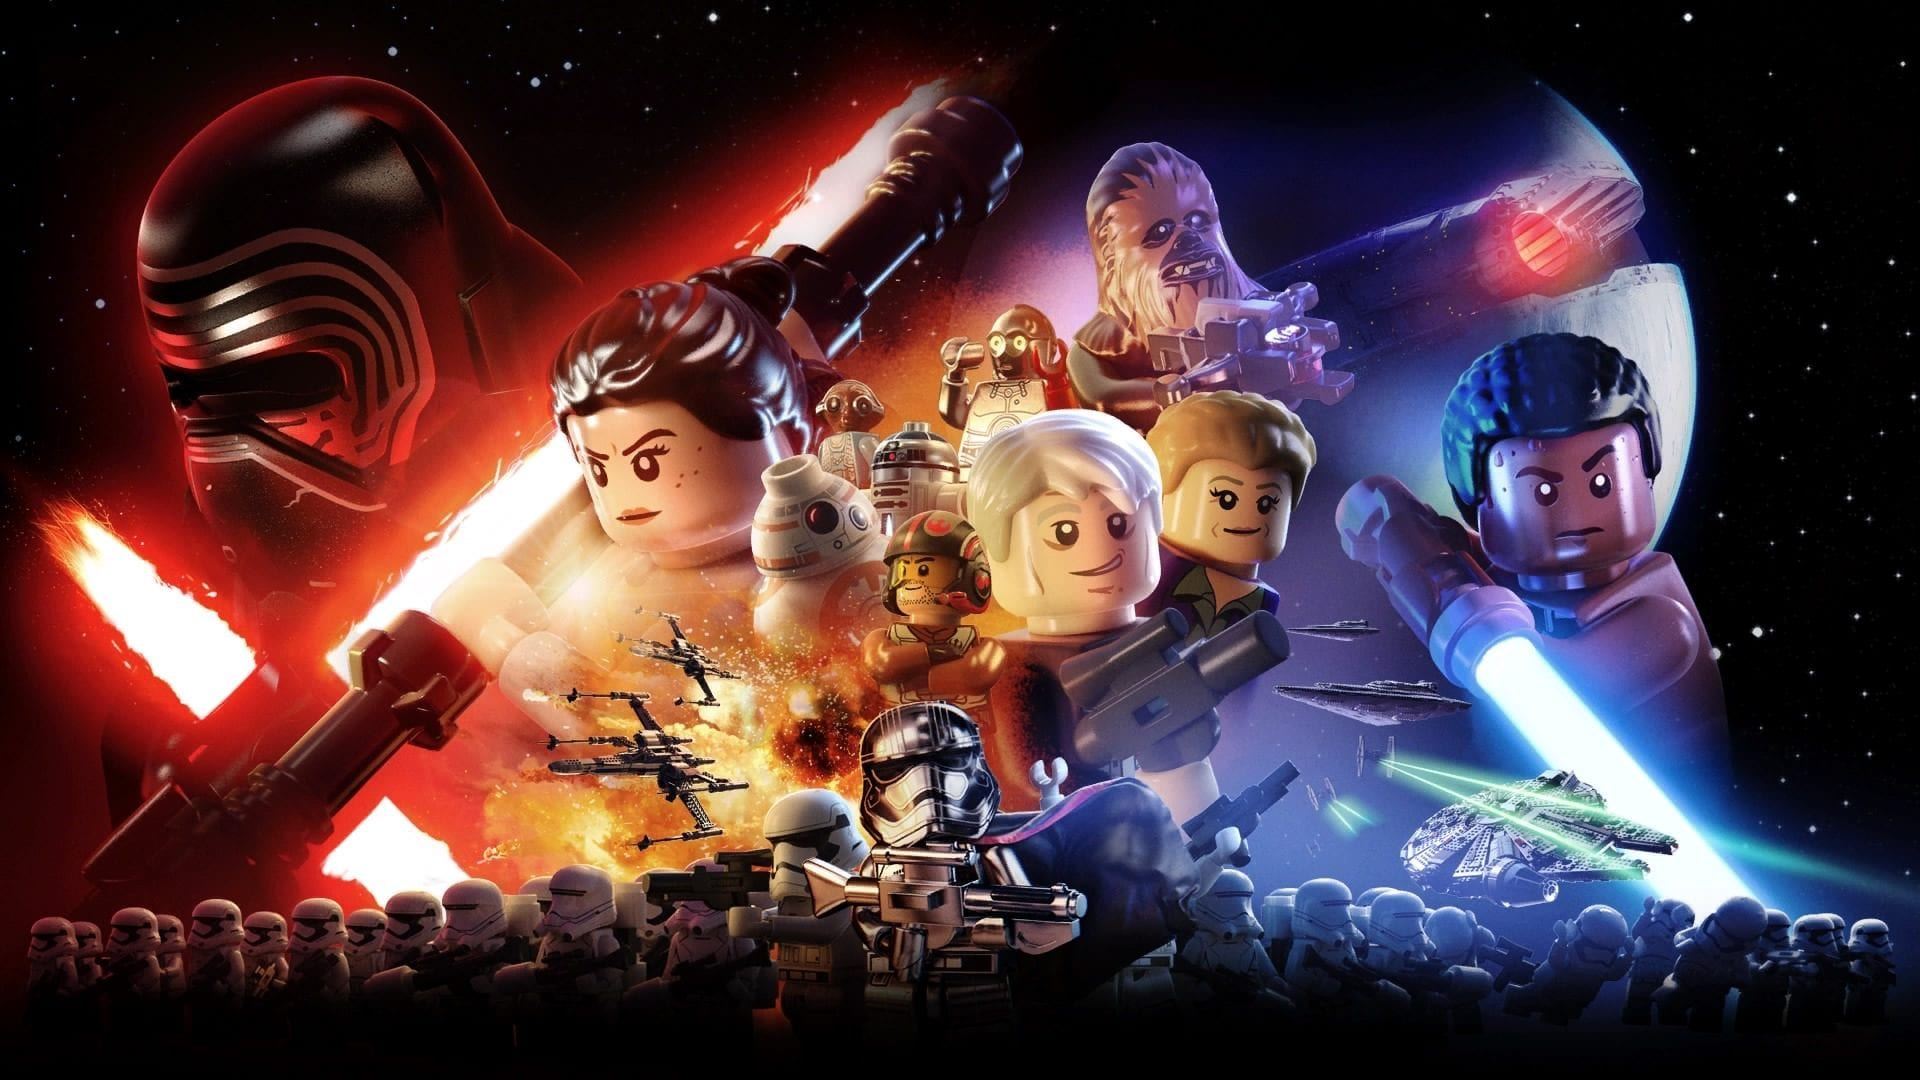 lego star wars the force awakens, trophies, platinums, june, 2016